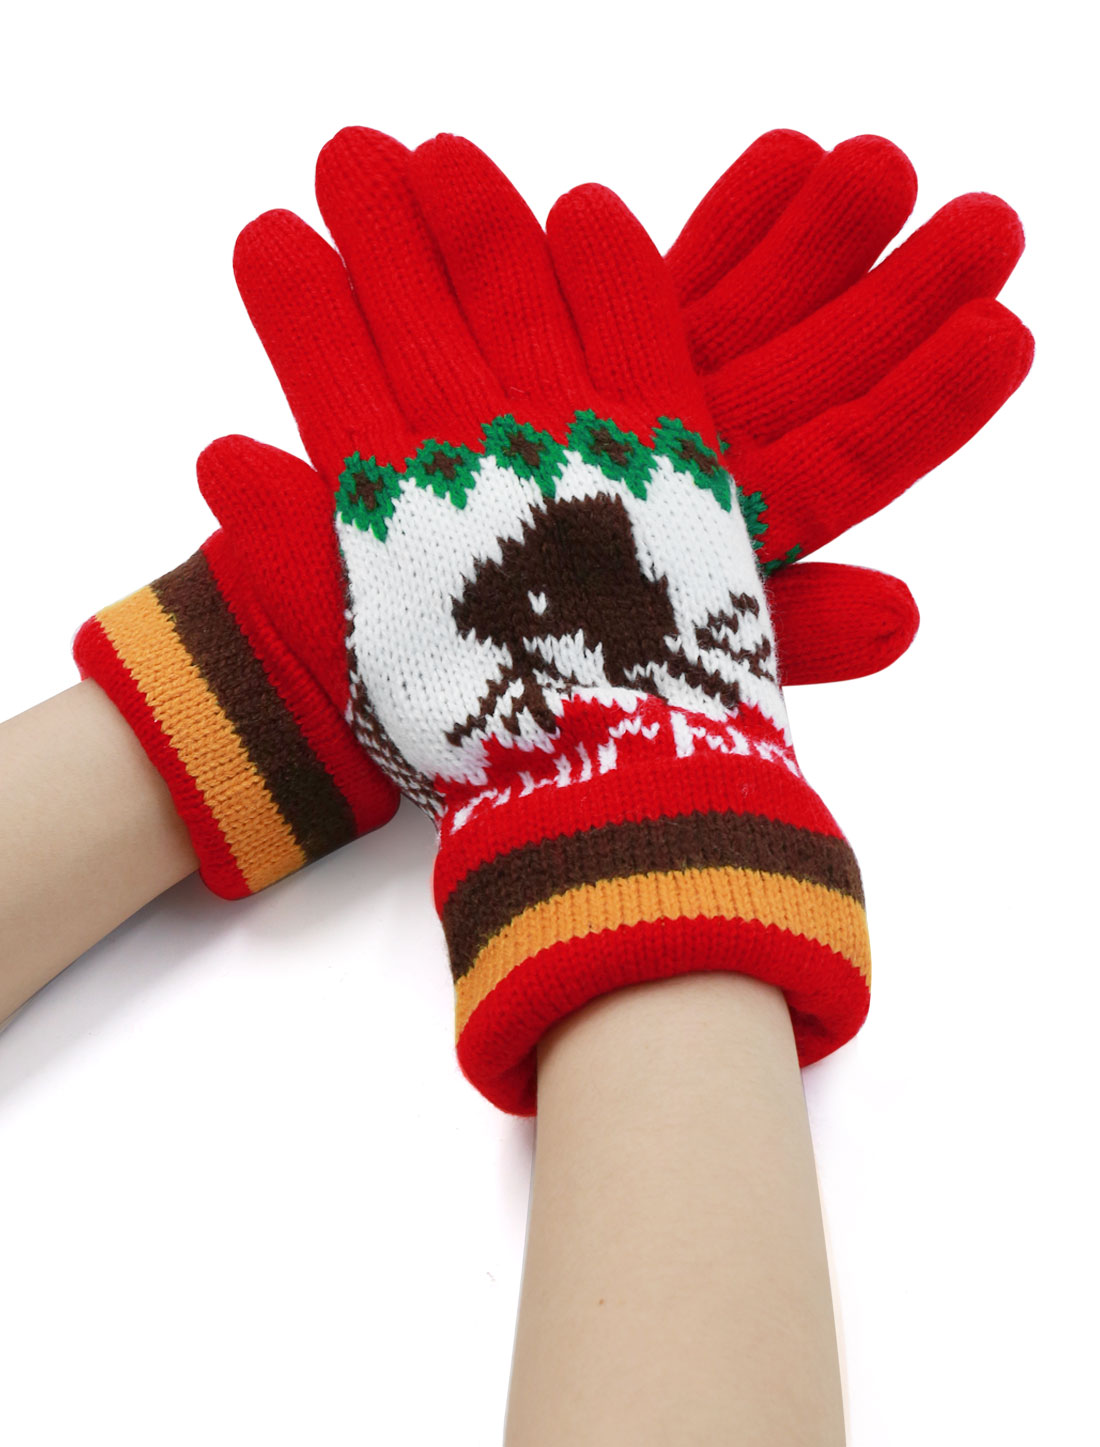 Ladies Roll Up Cuffs Five Fingers Deer Pattern Thicken Knit Gloves Pair Red